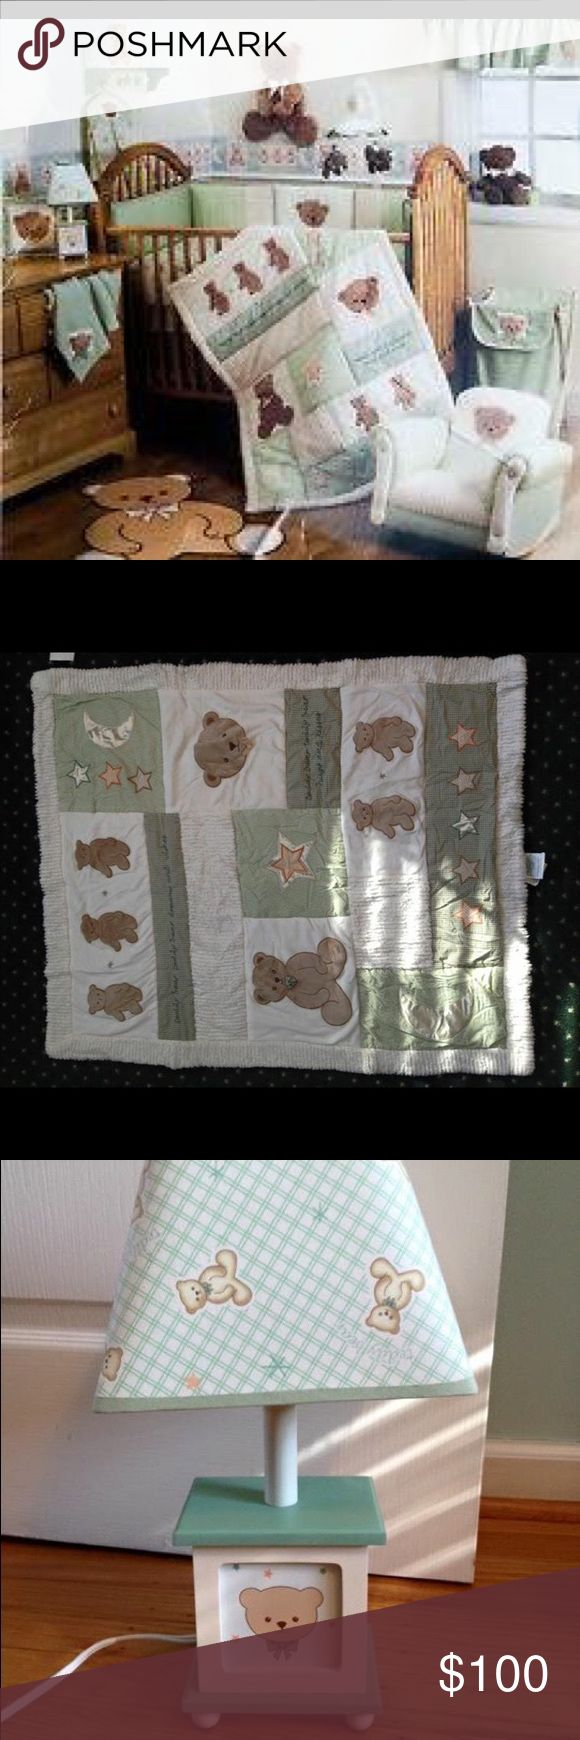 """Lambs and Ivy """"Dream Teddy"""" Nursery Set This nursery set comes with: crib comforter, bumpers, bed skirt, diaper stacker, matching lamp and nursery wall hanging, border rolls, window balances, and teddy sheets. This comes from a smoke-free home! In great condition! Lambs and Ivy Other"""